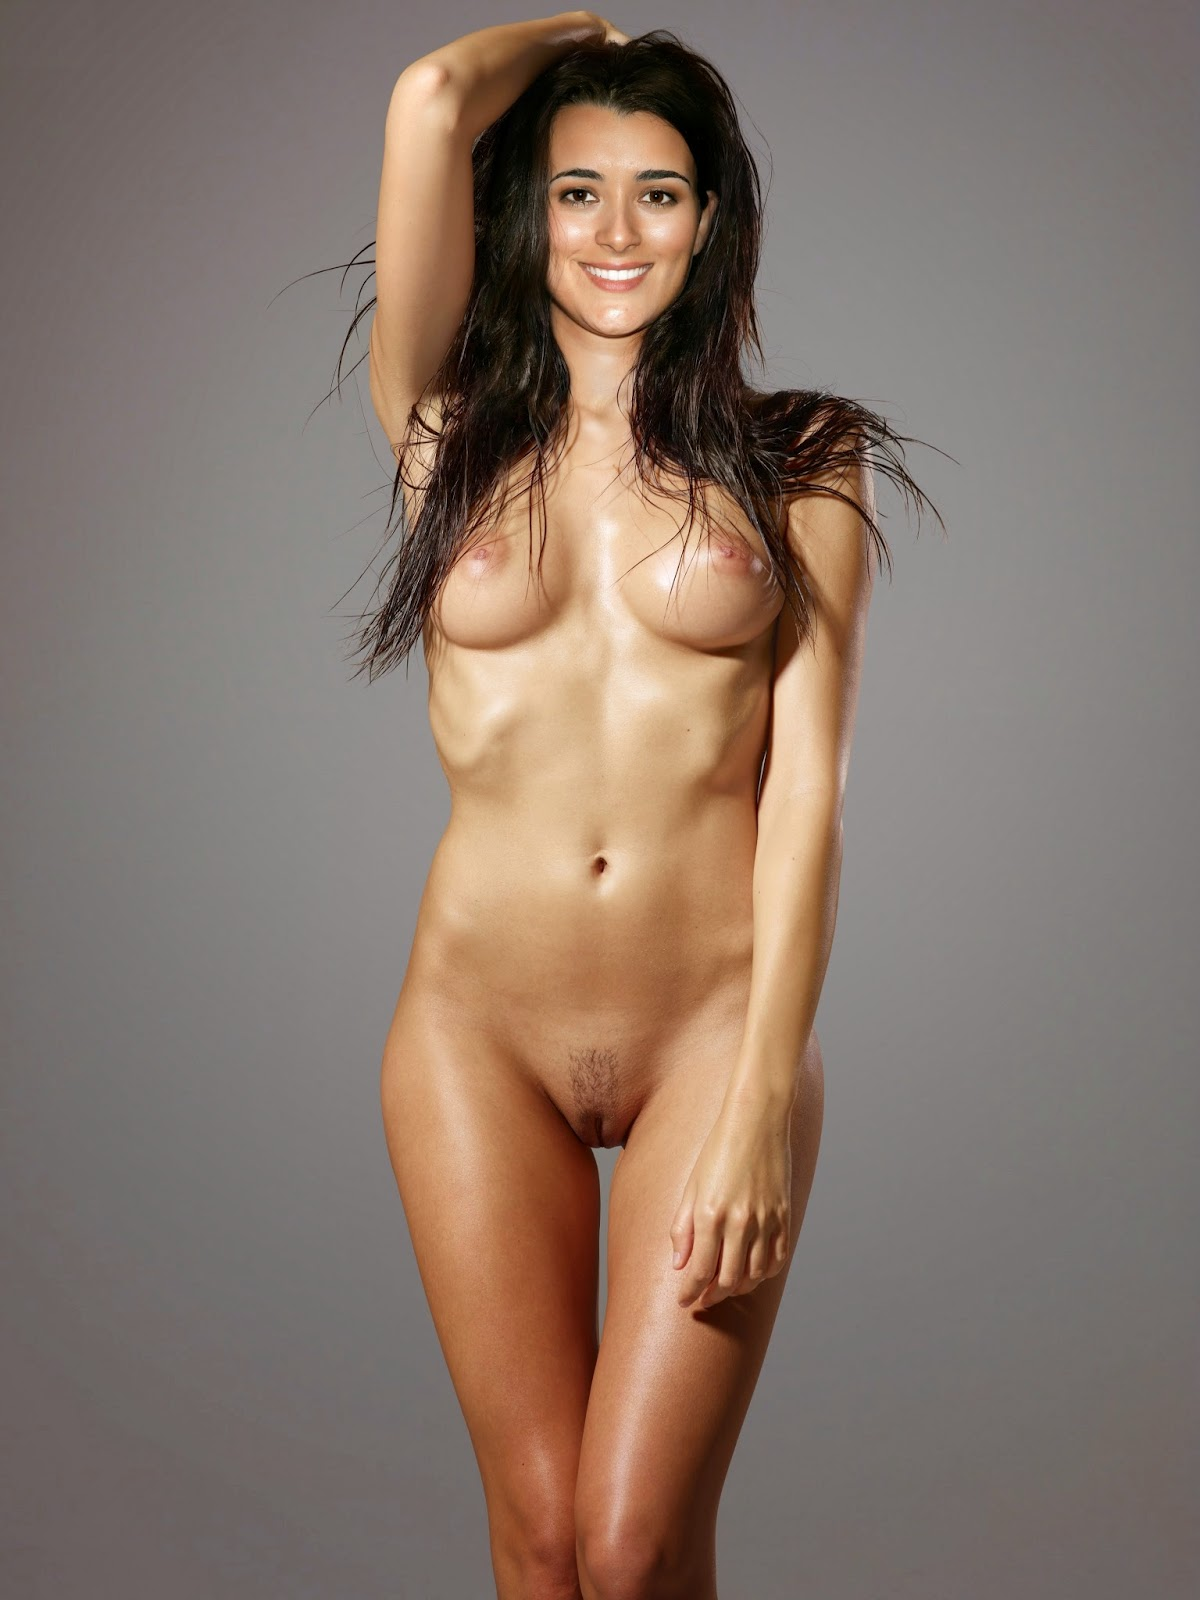 Naked Pictures Of Female Celebrities